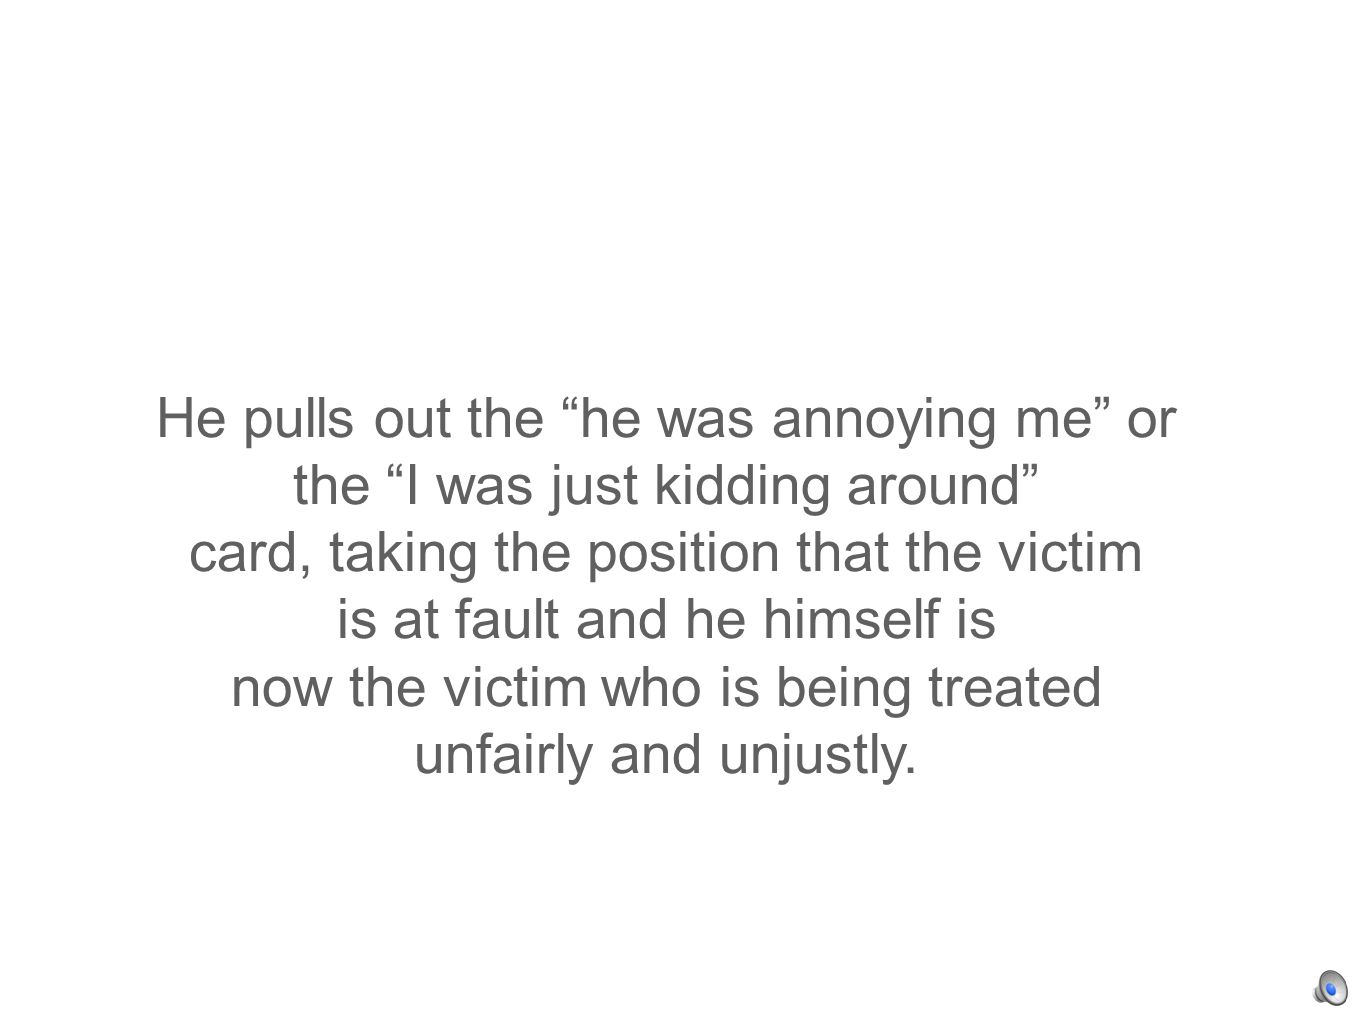 He pulls out the he was annoying me or the I was just kidding around card, taking the position that the victim is at fault and he himself is now the victim who is being treated unfairly and unjustly.